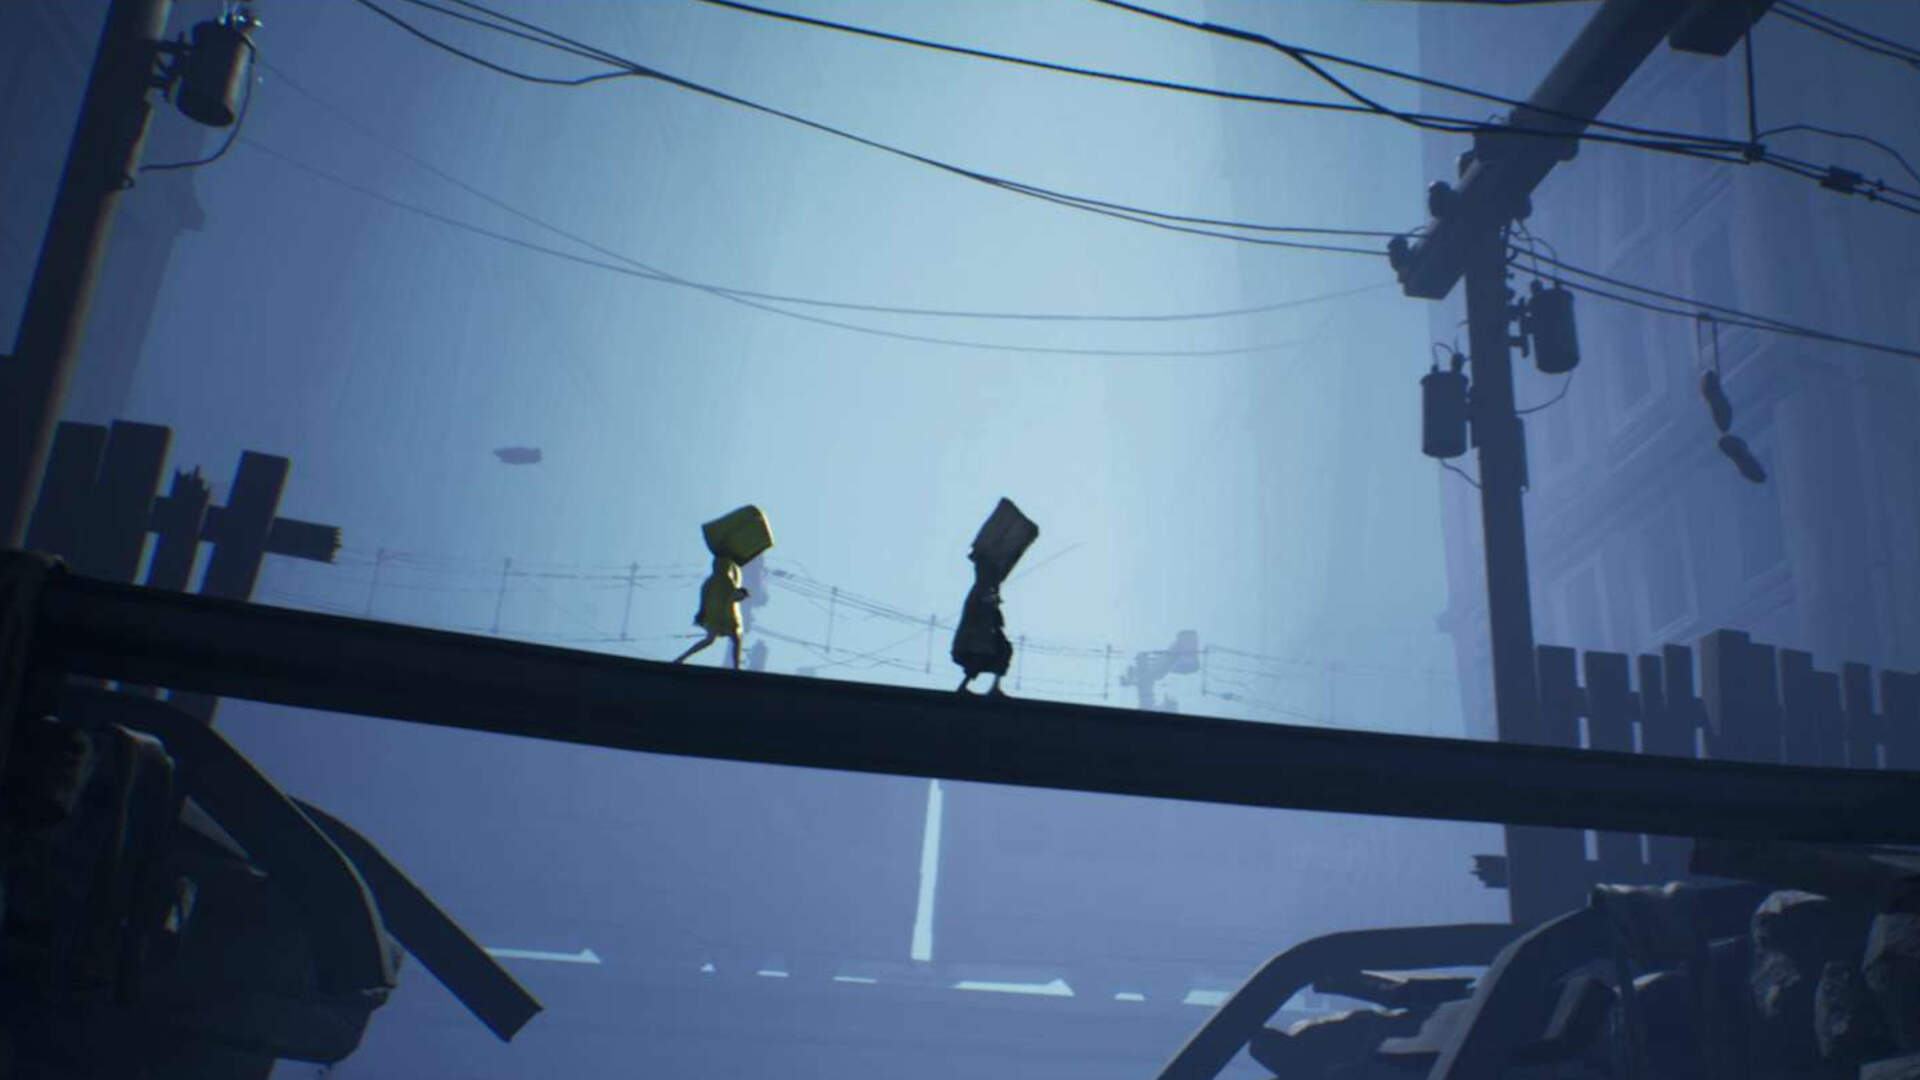 More Info on Little Nightmares 2 Coming This Summer